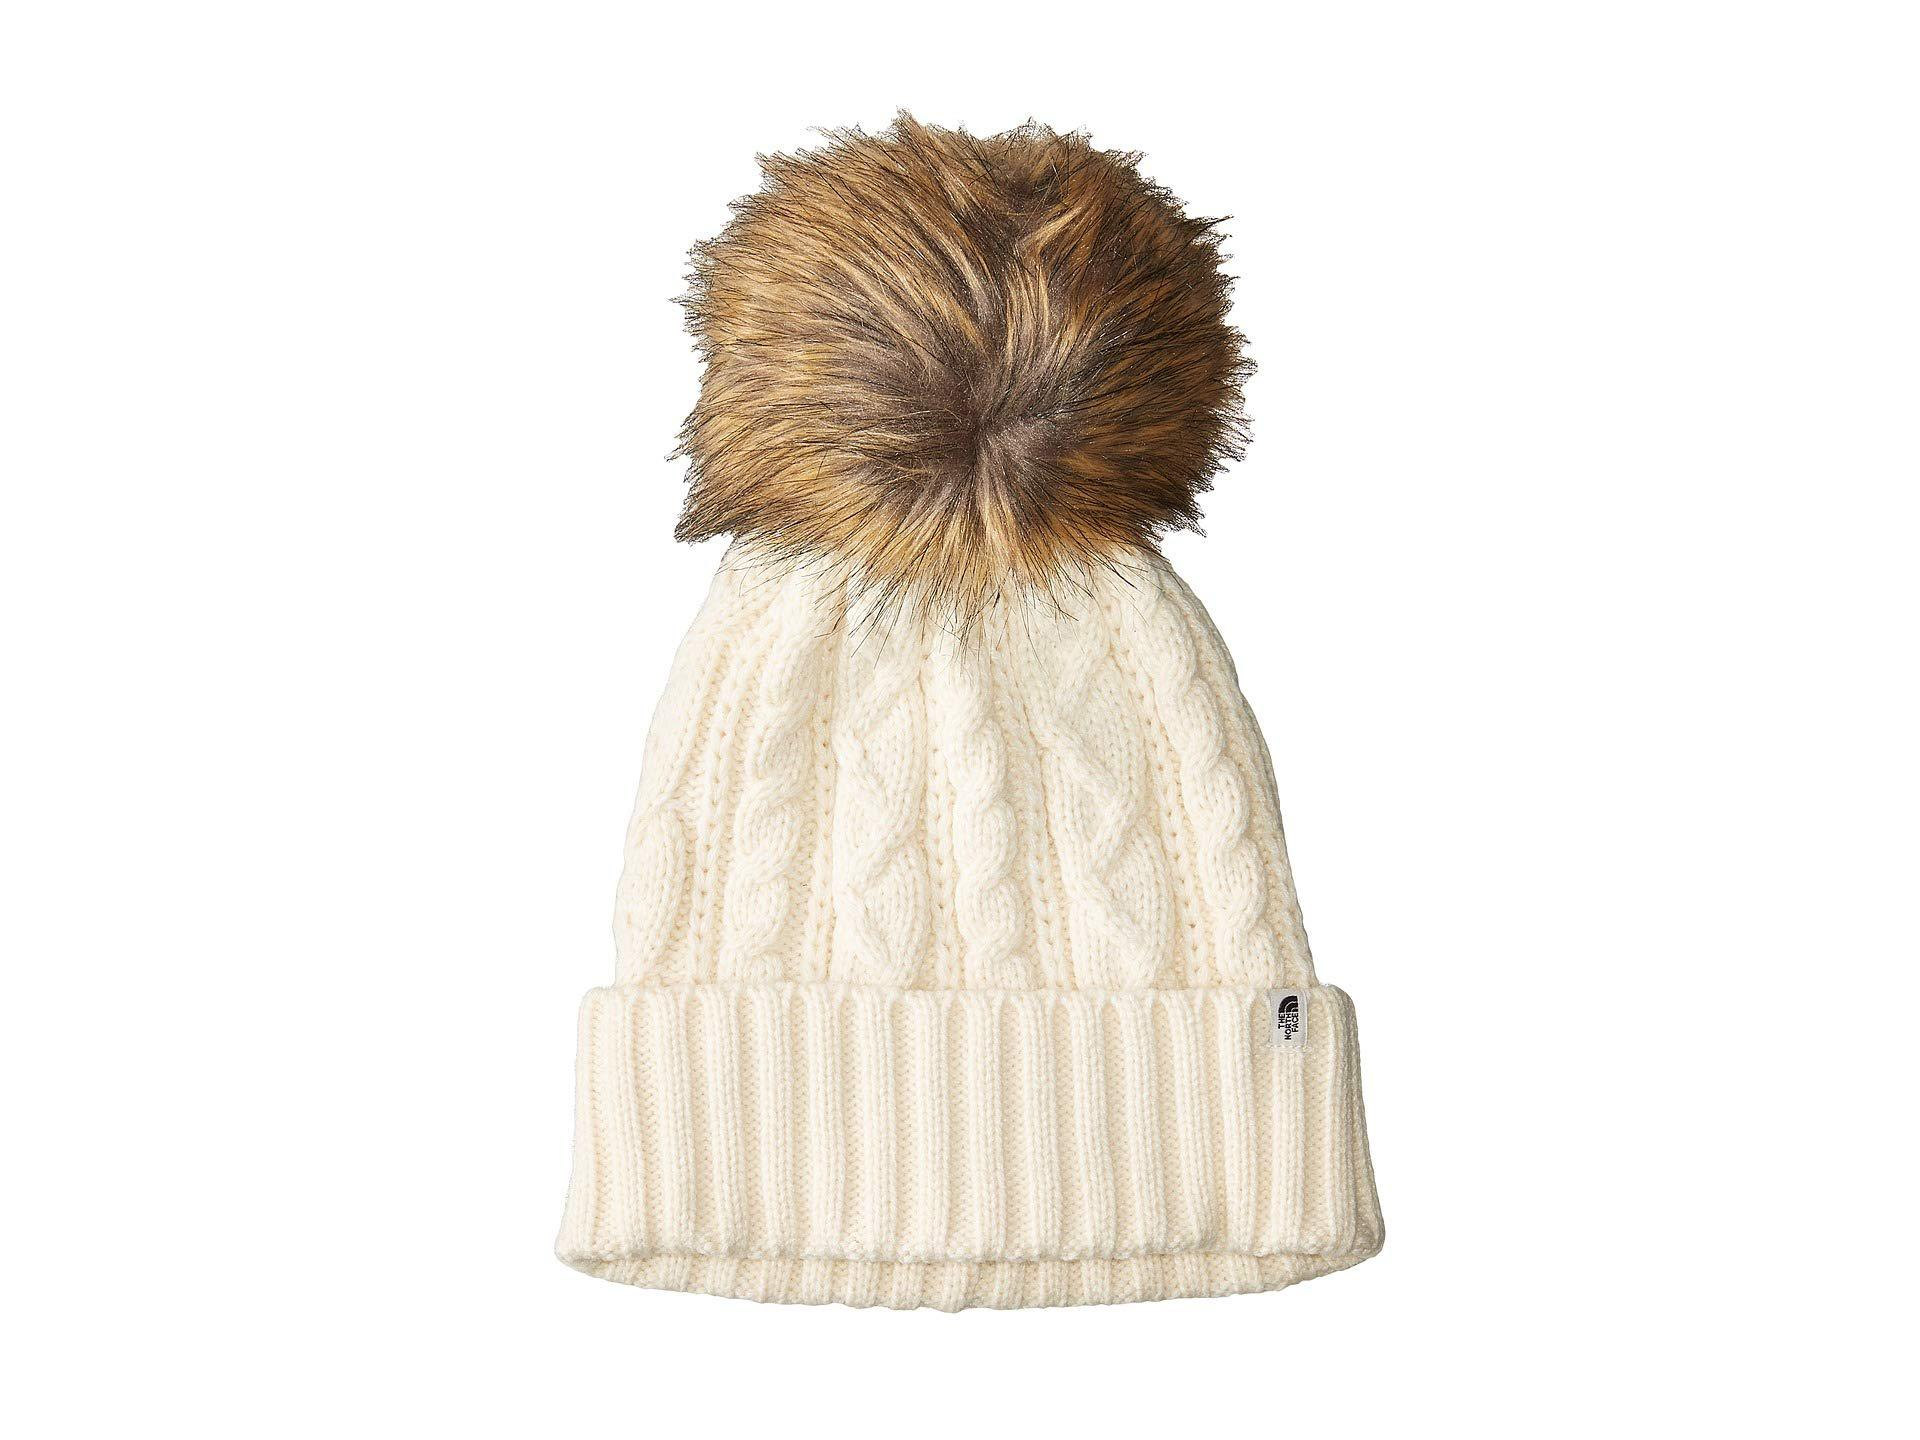 cf7e8575b0c Lyst - The North Face Oh-mega Fur Pom Beanie (new Taupe Green ...